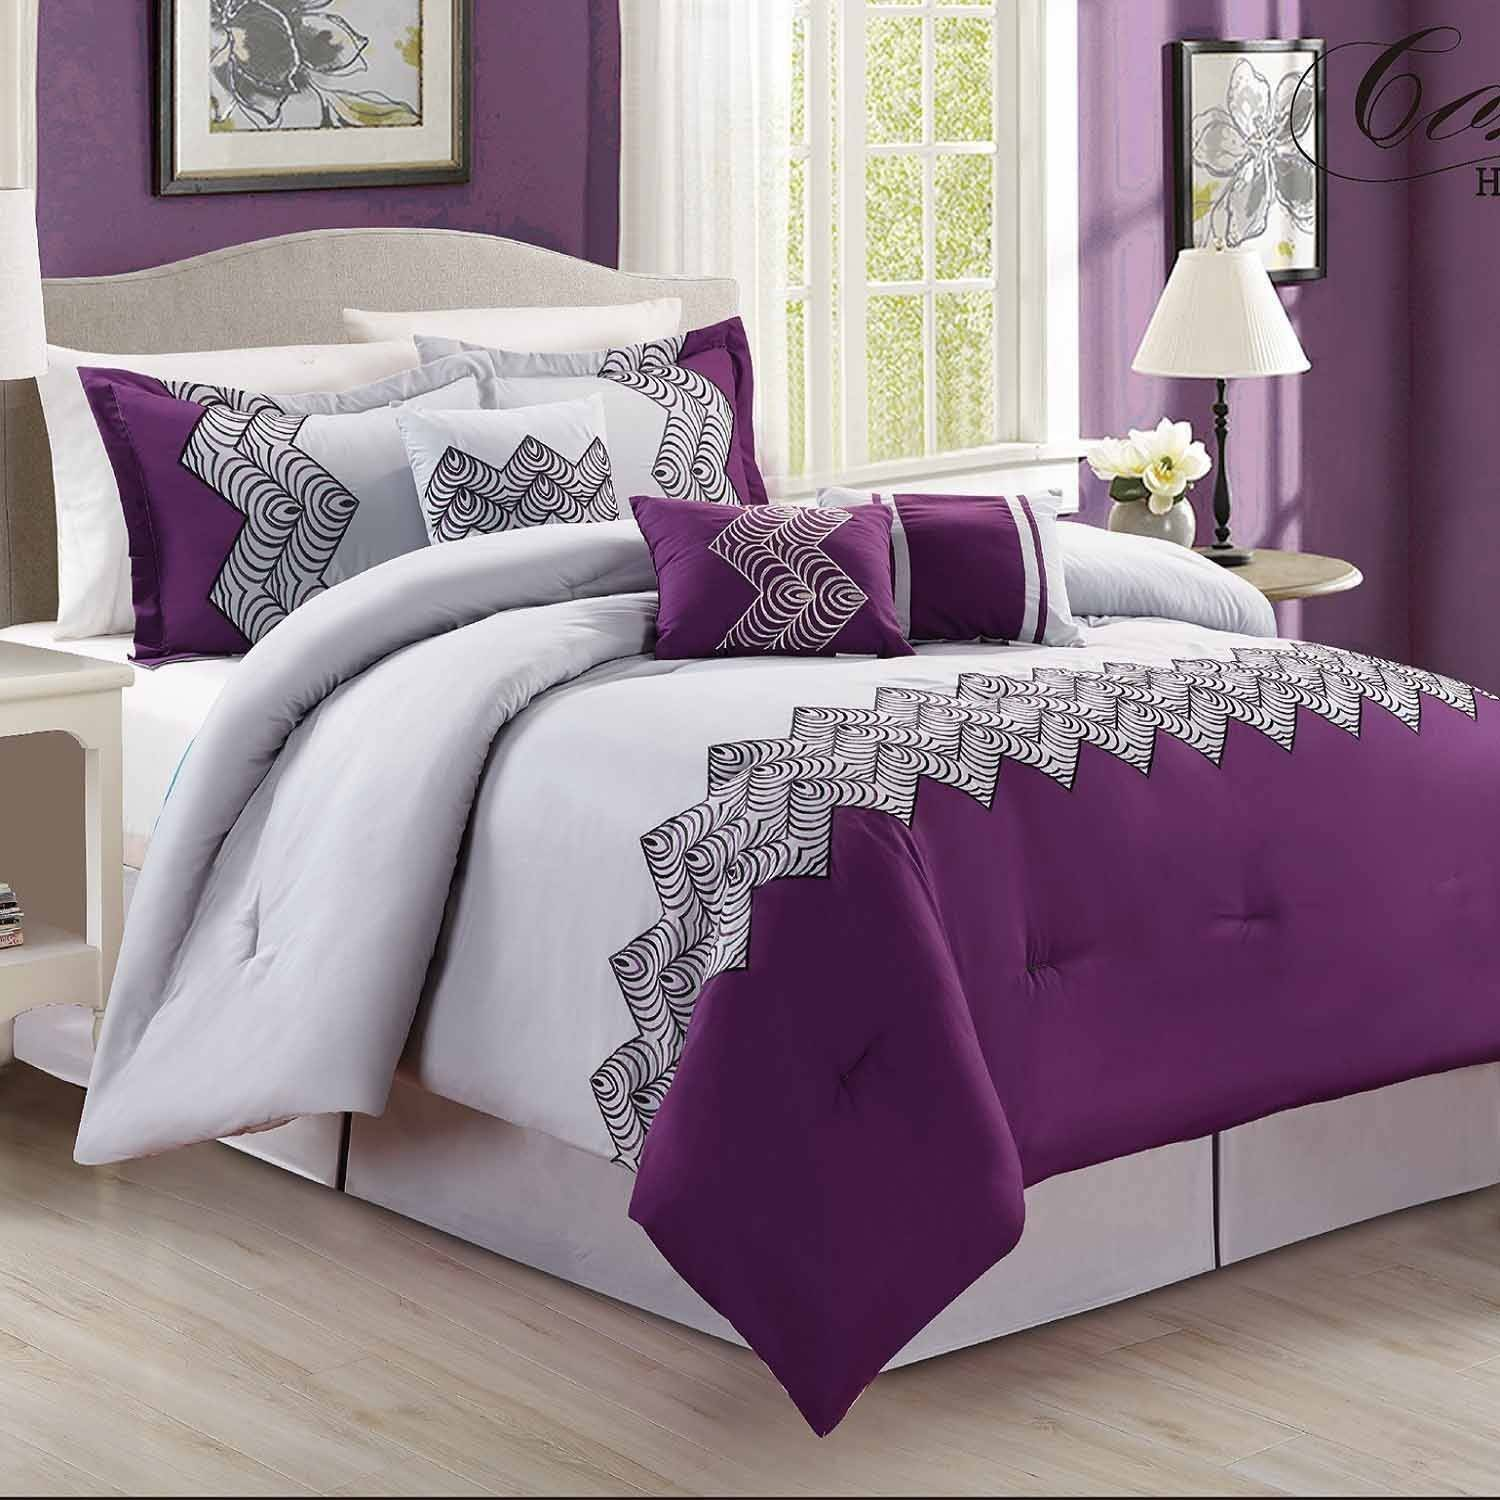 Fashion Street Emparial 7 Piece Embroidered Bedding